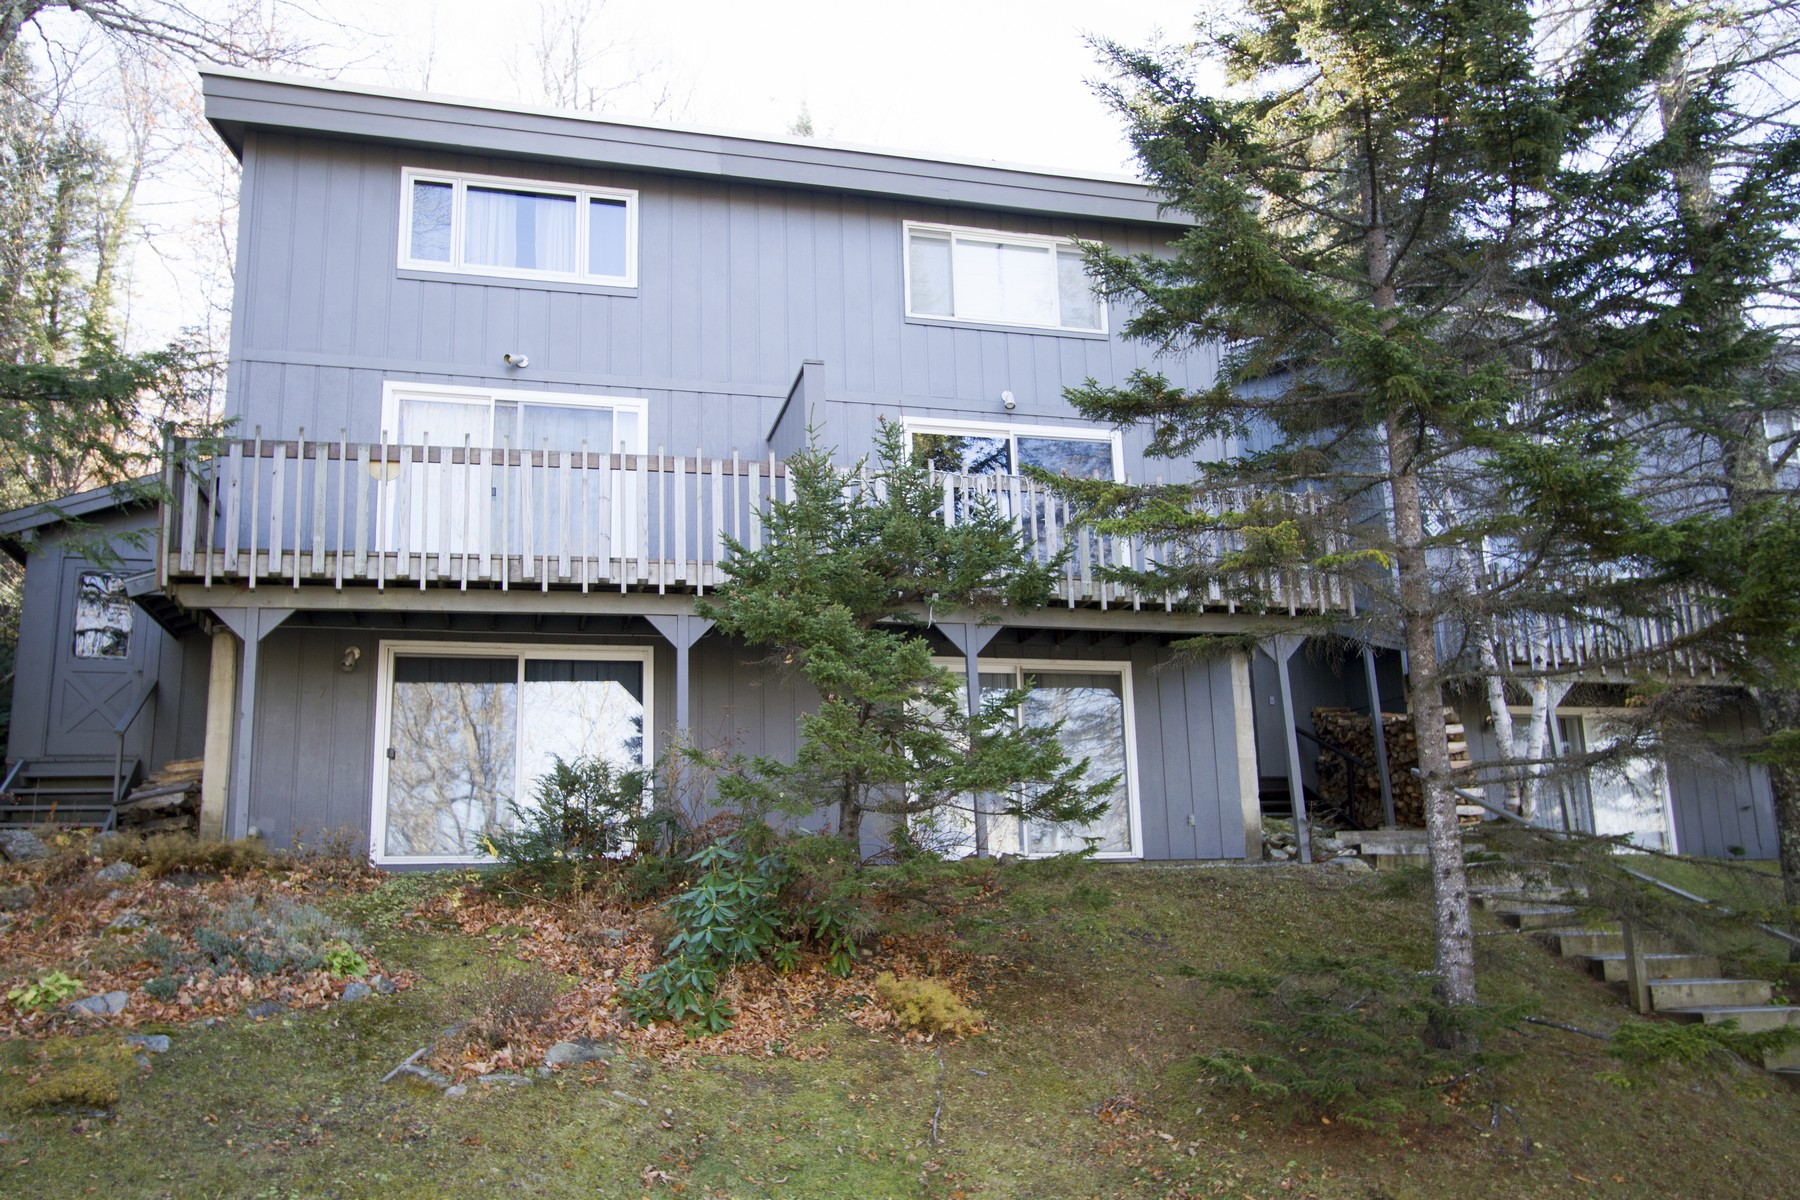 Condominium for Sale at 8 Stratton West Rd, Winhall Winhall, Vermont, 05340 United States